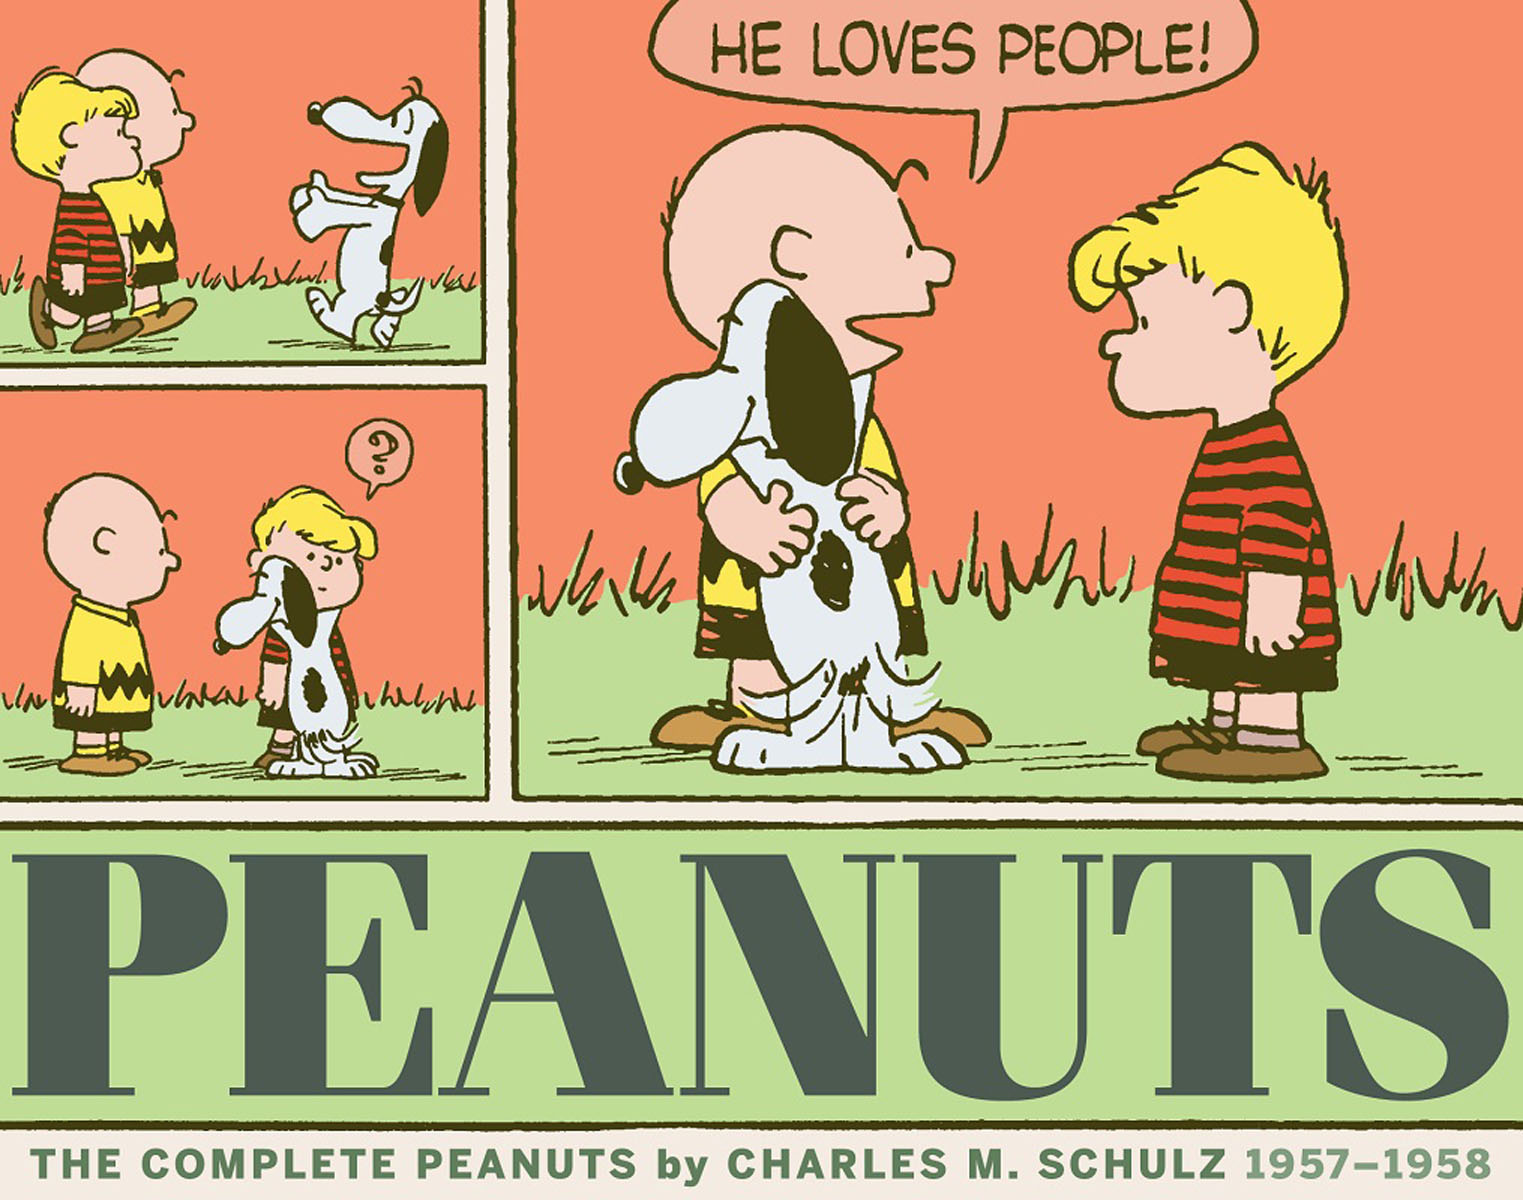 The Complete Peanuts 1957-1958 driven to distraction